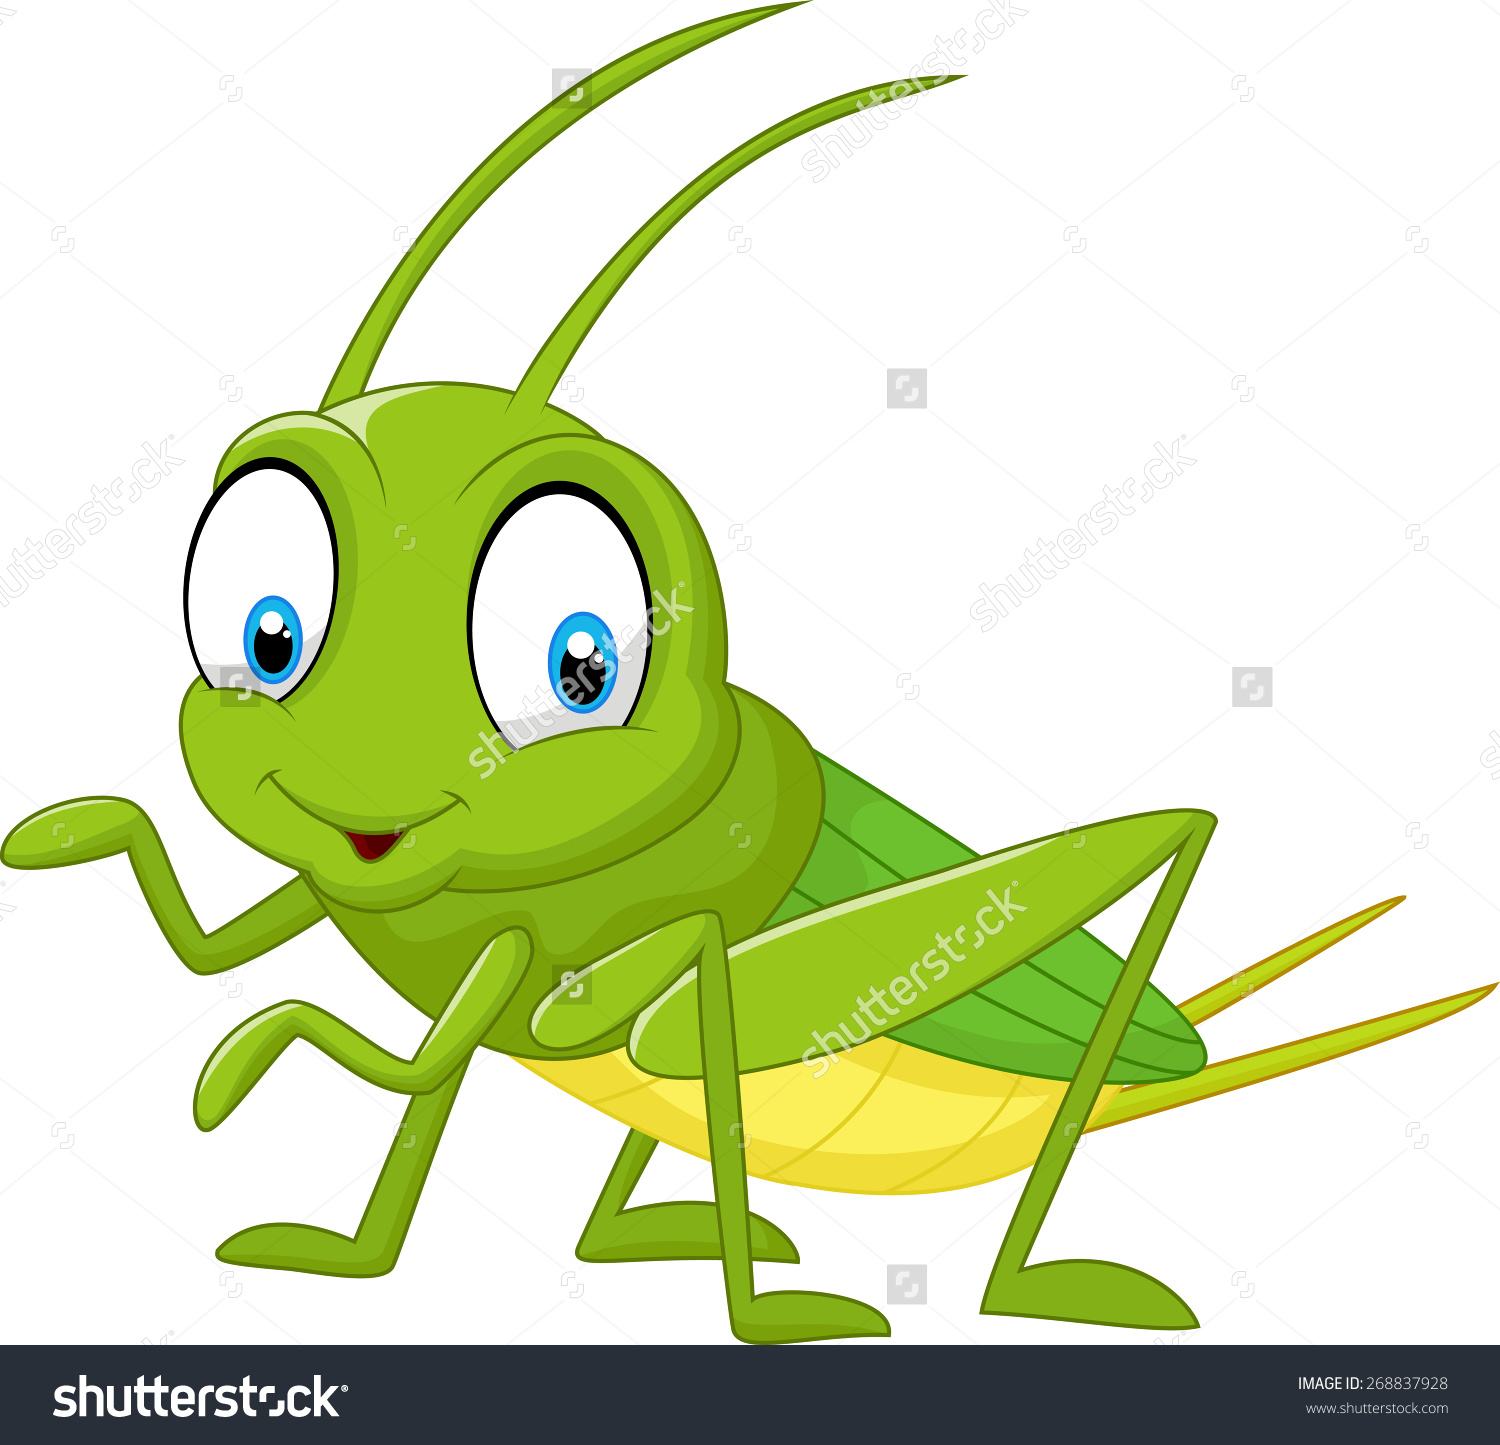 Insect box clipart 20 free Cliparts | Download images on ...